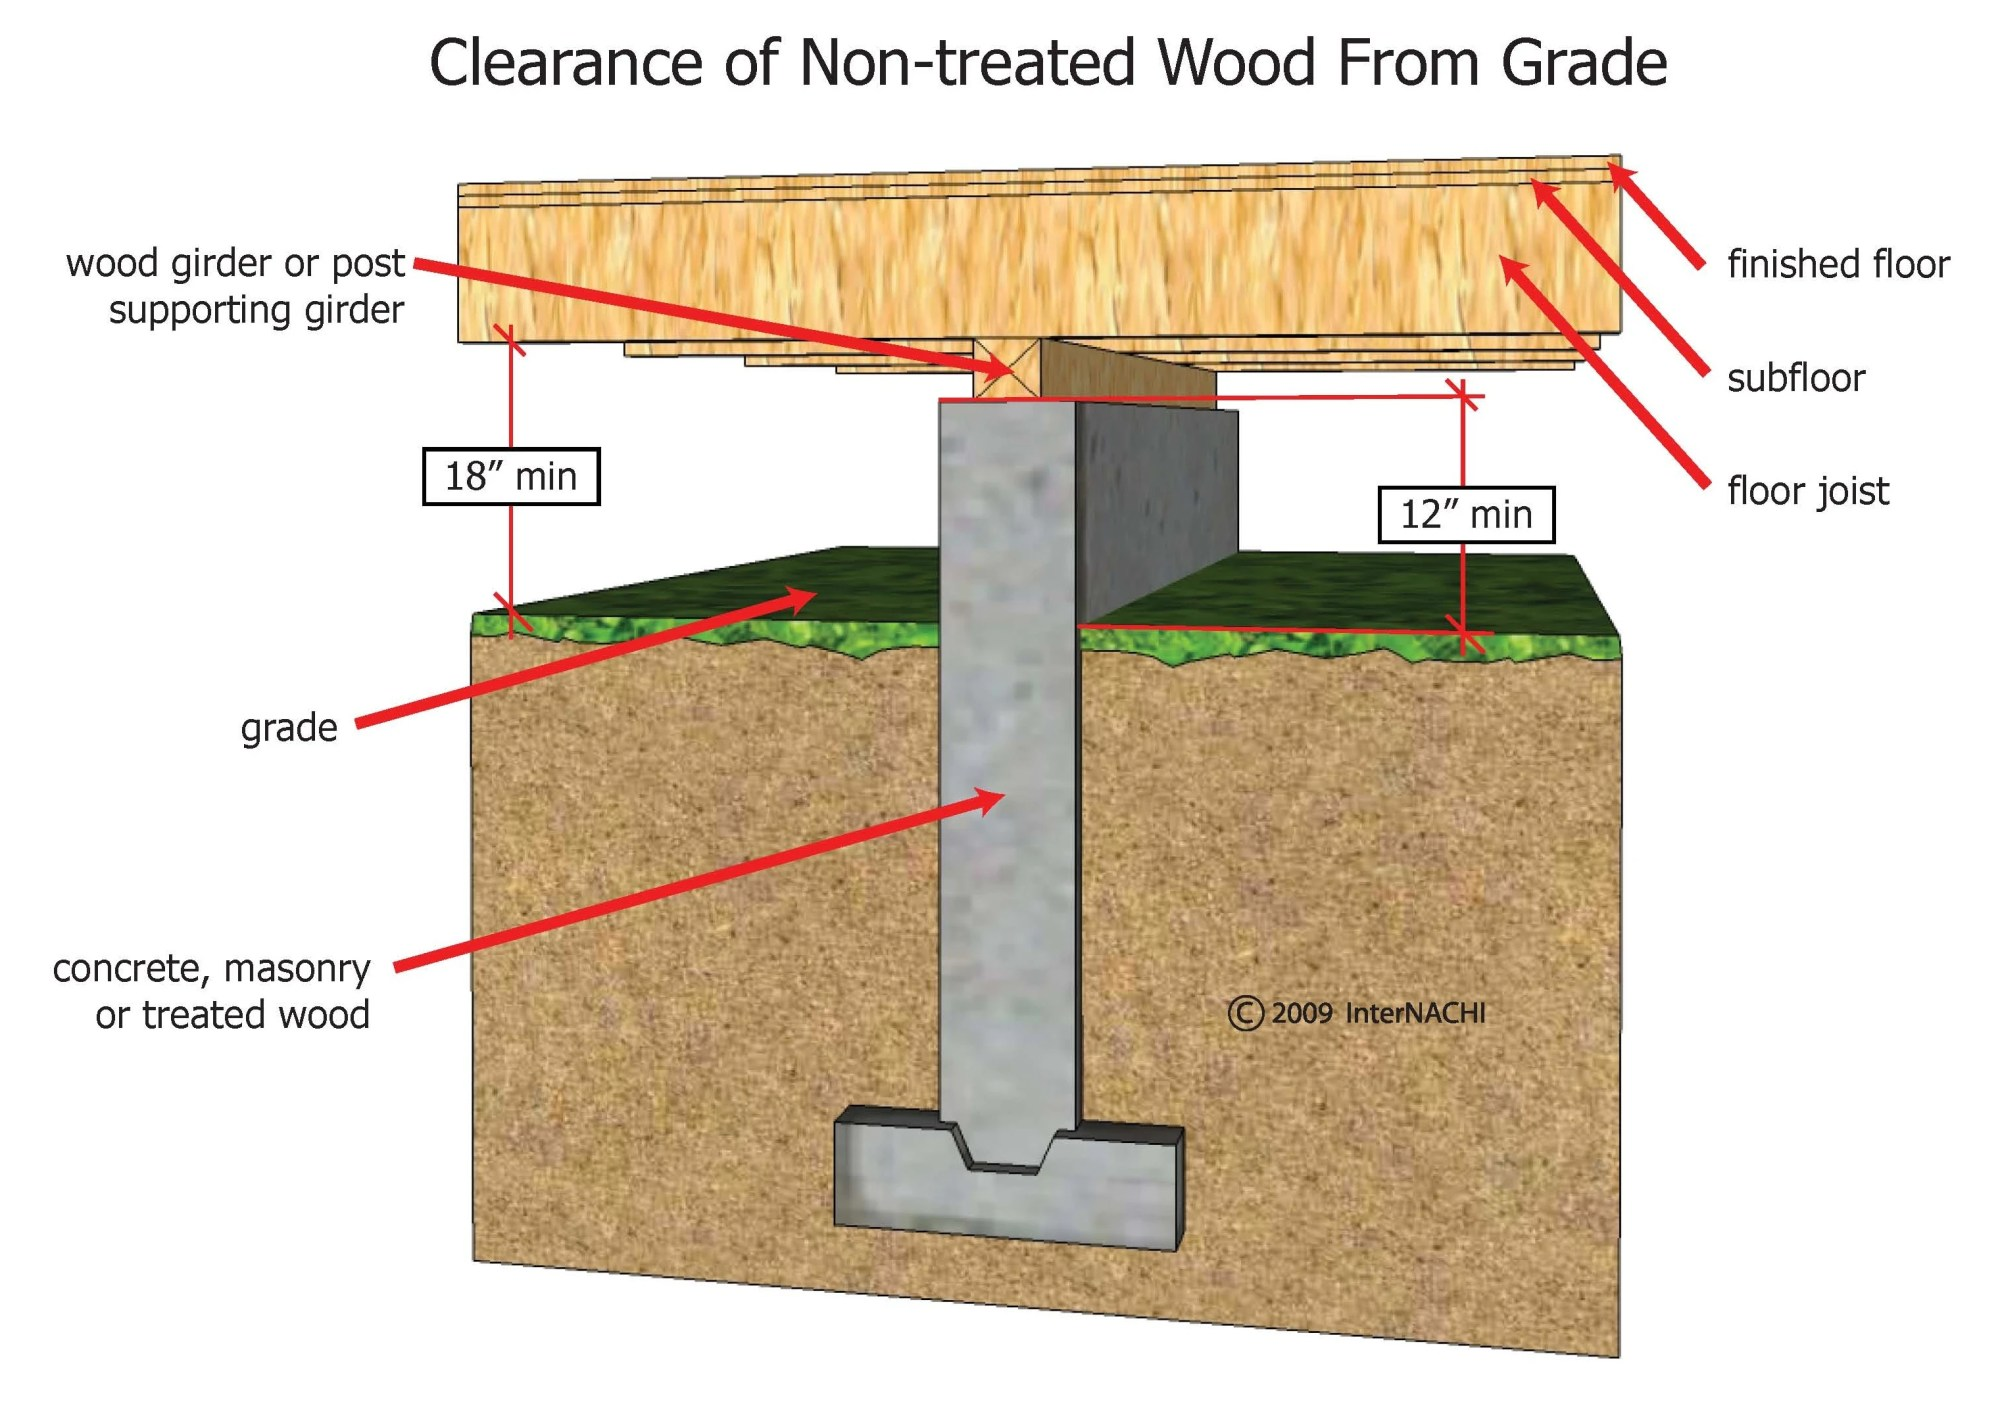 hight resolution of clearance of non treated wood from grade